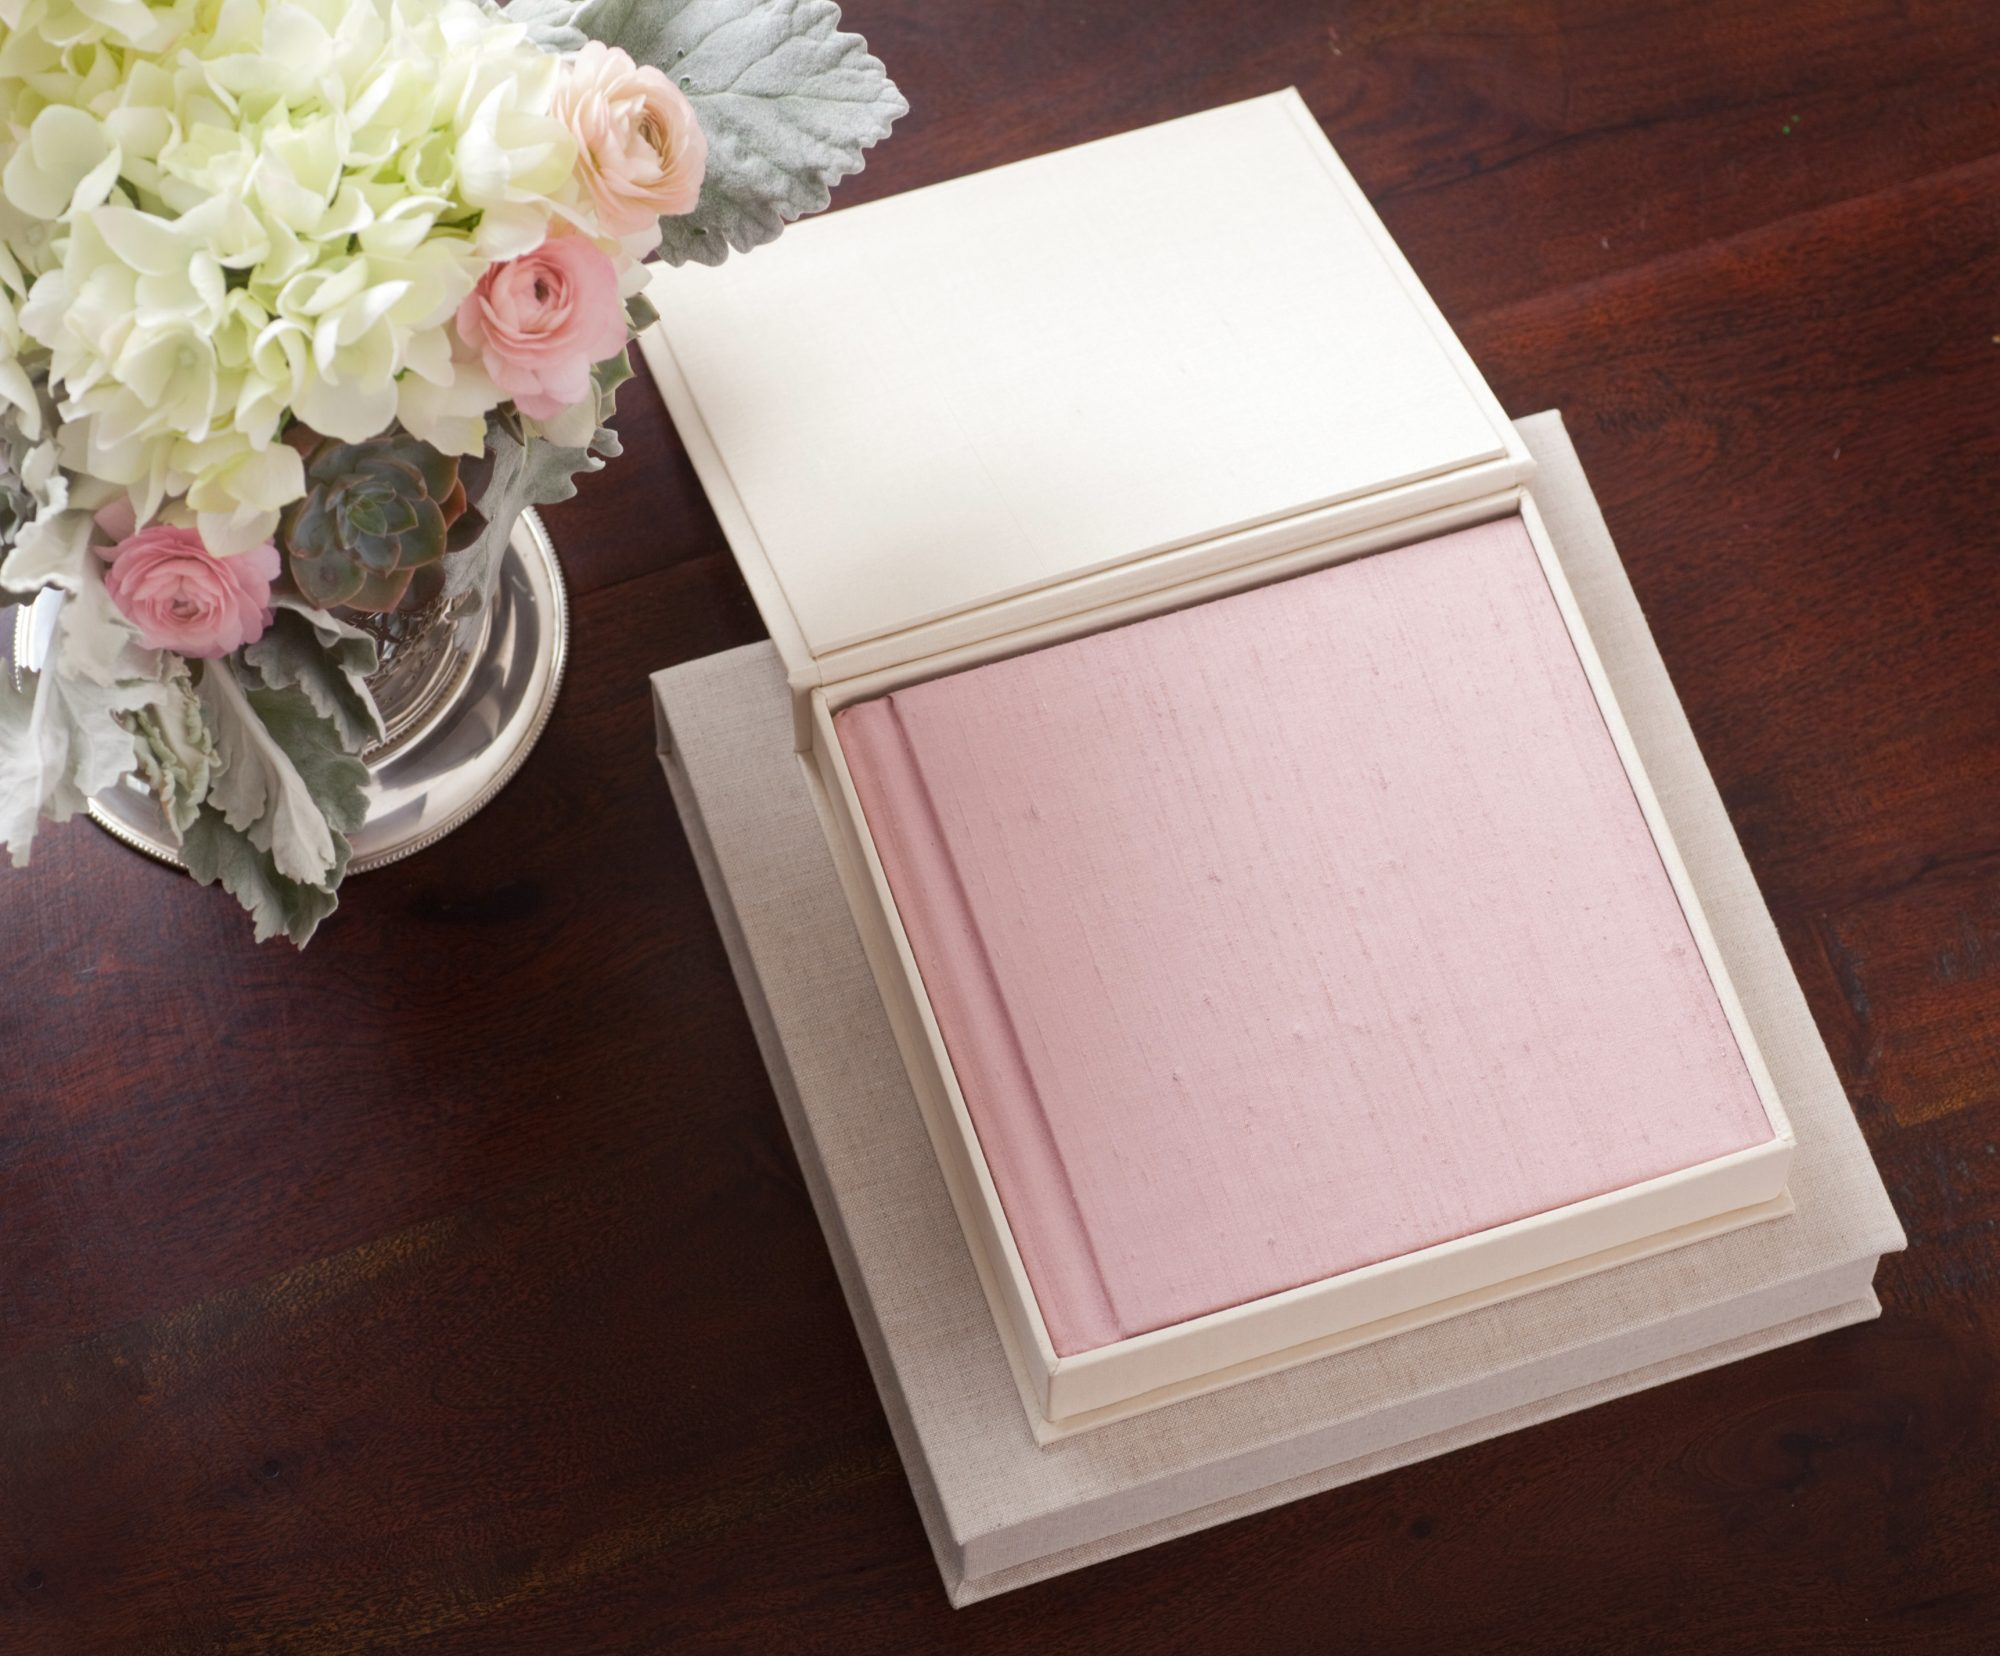 wedding photo albums pink cover in white box